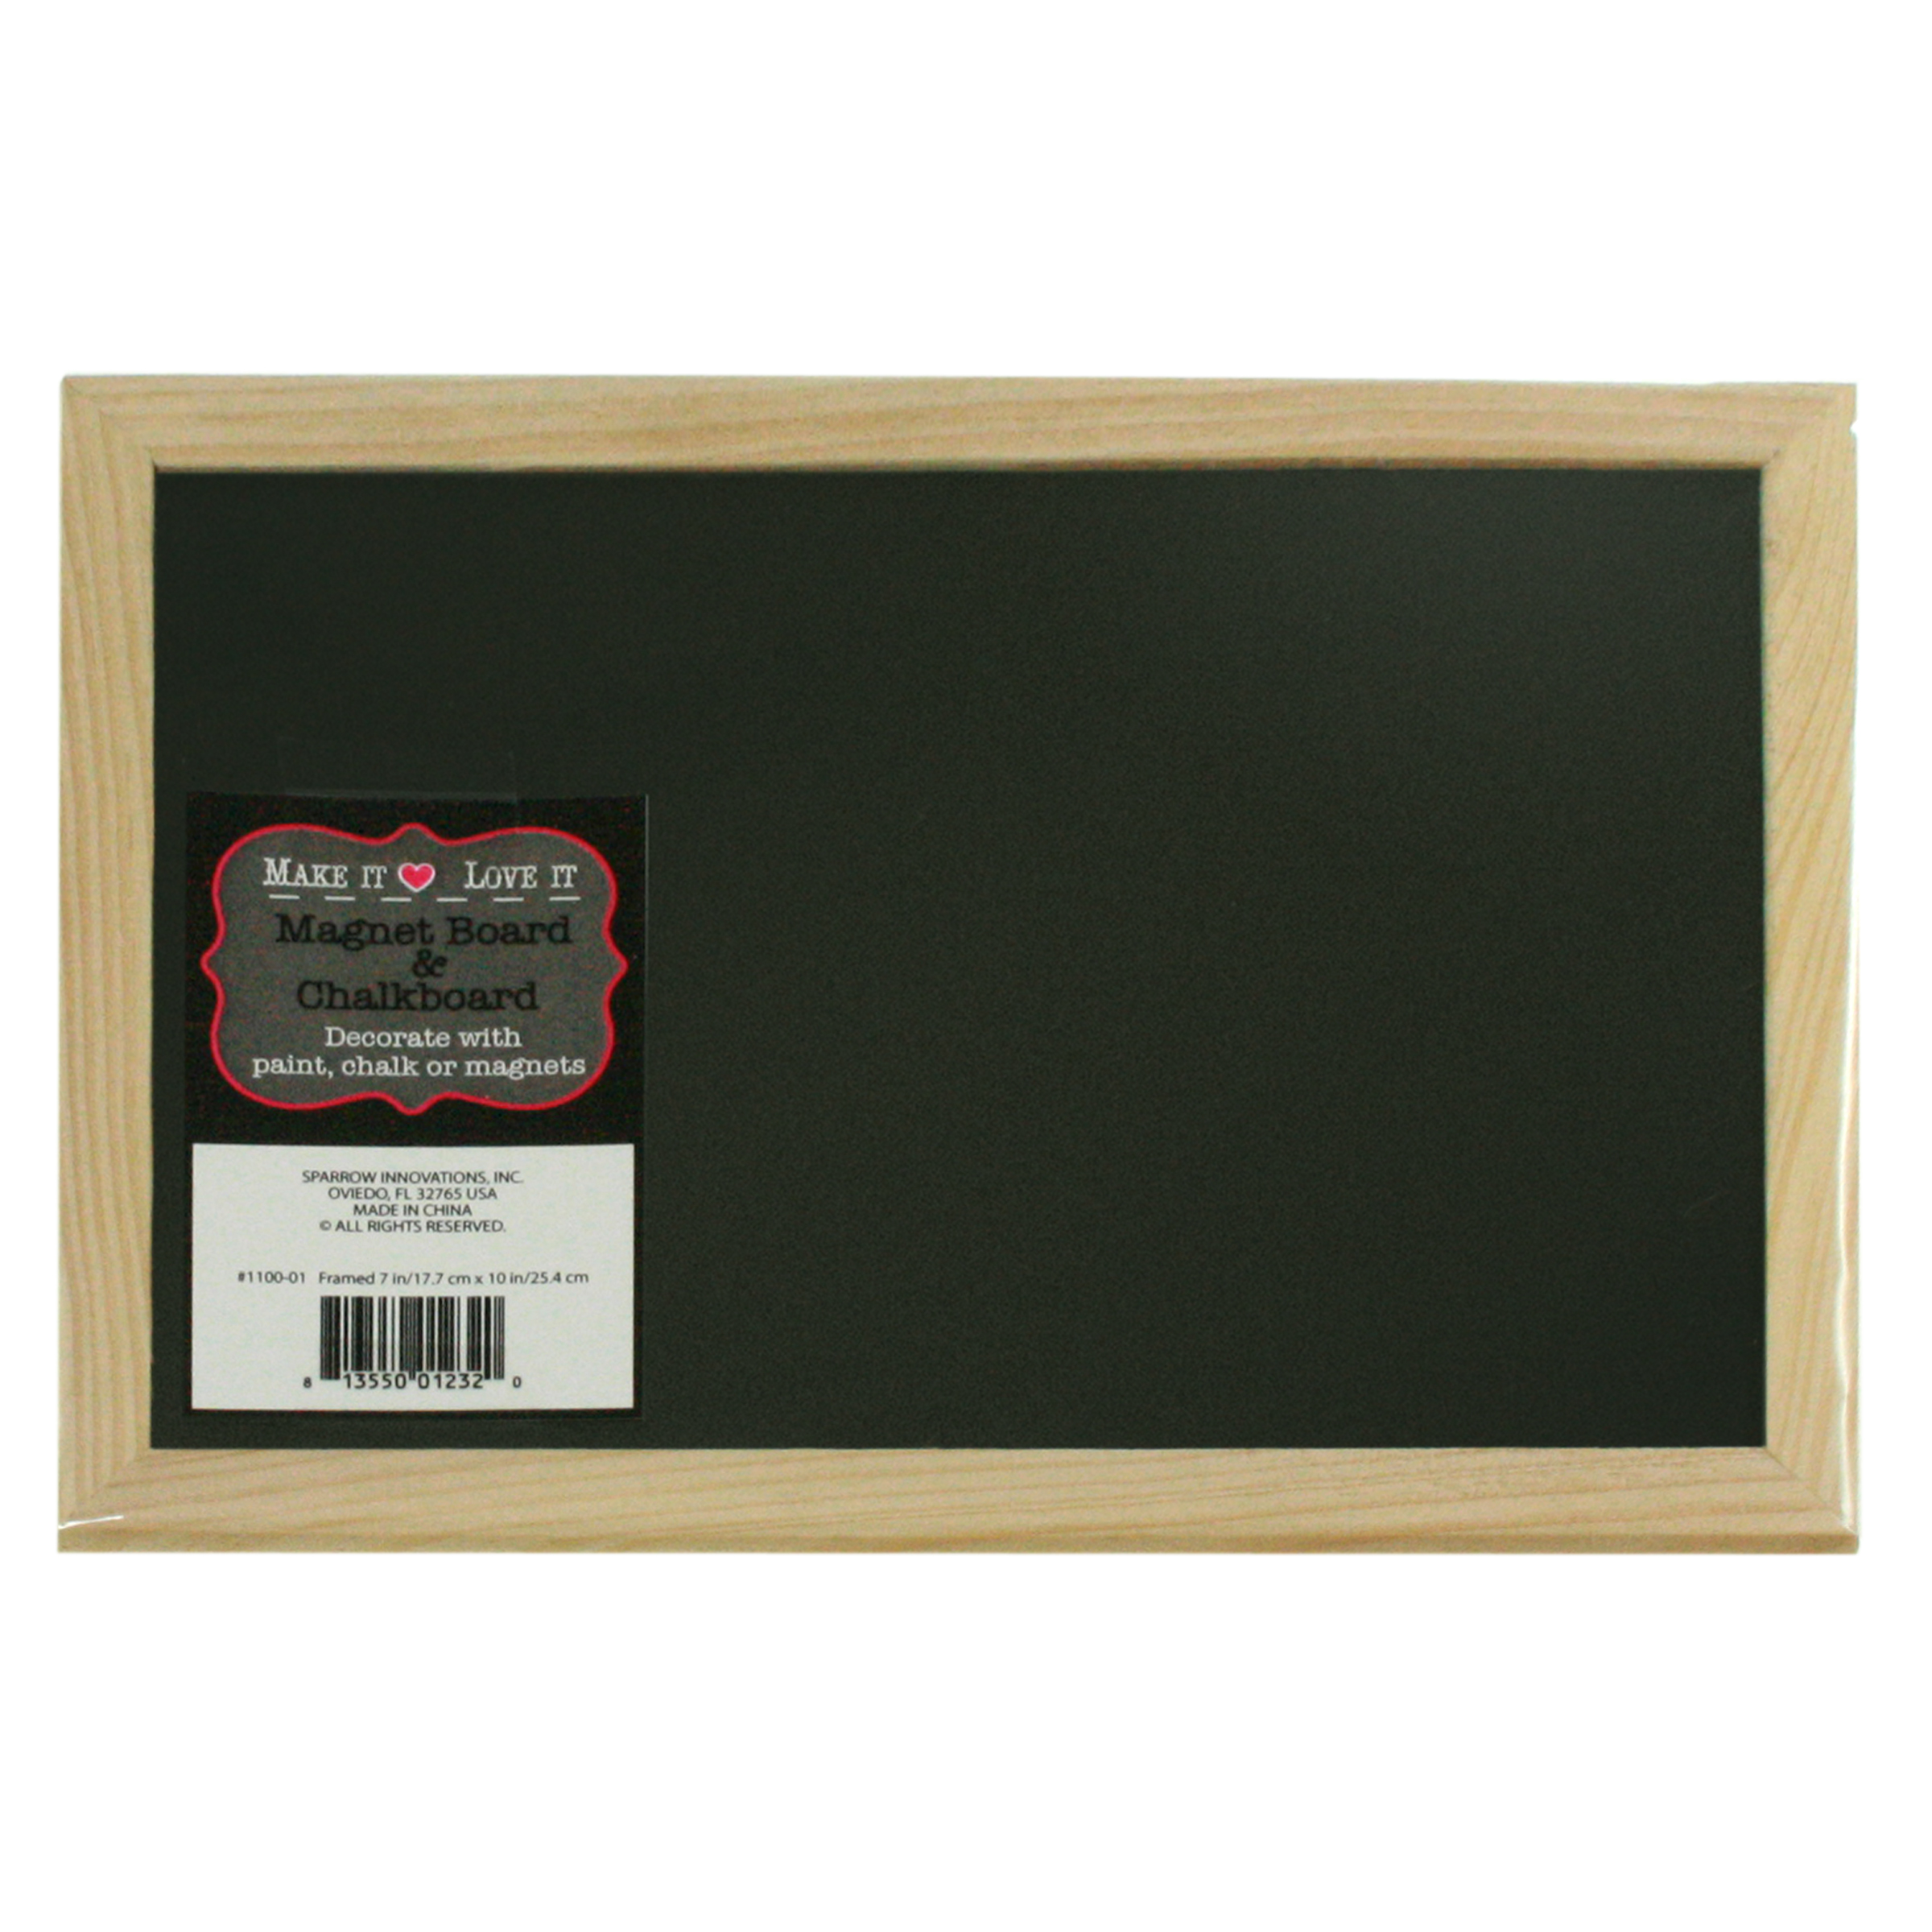 Make It Love It 7\u0022x10\u0022 Magnet Board &Chalkboard